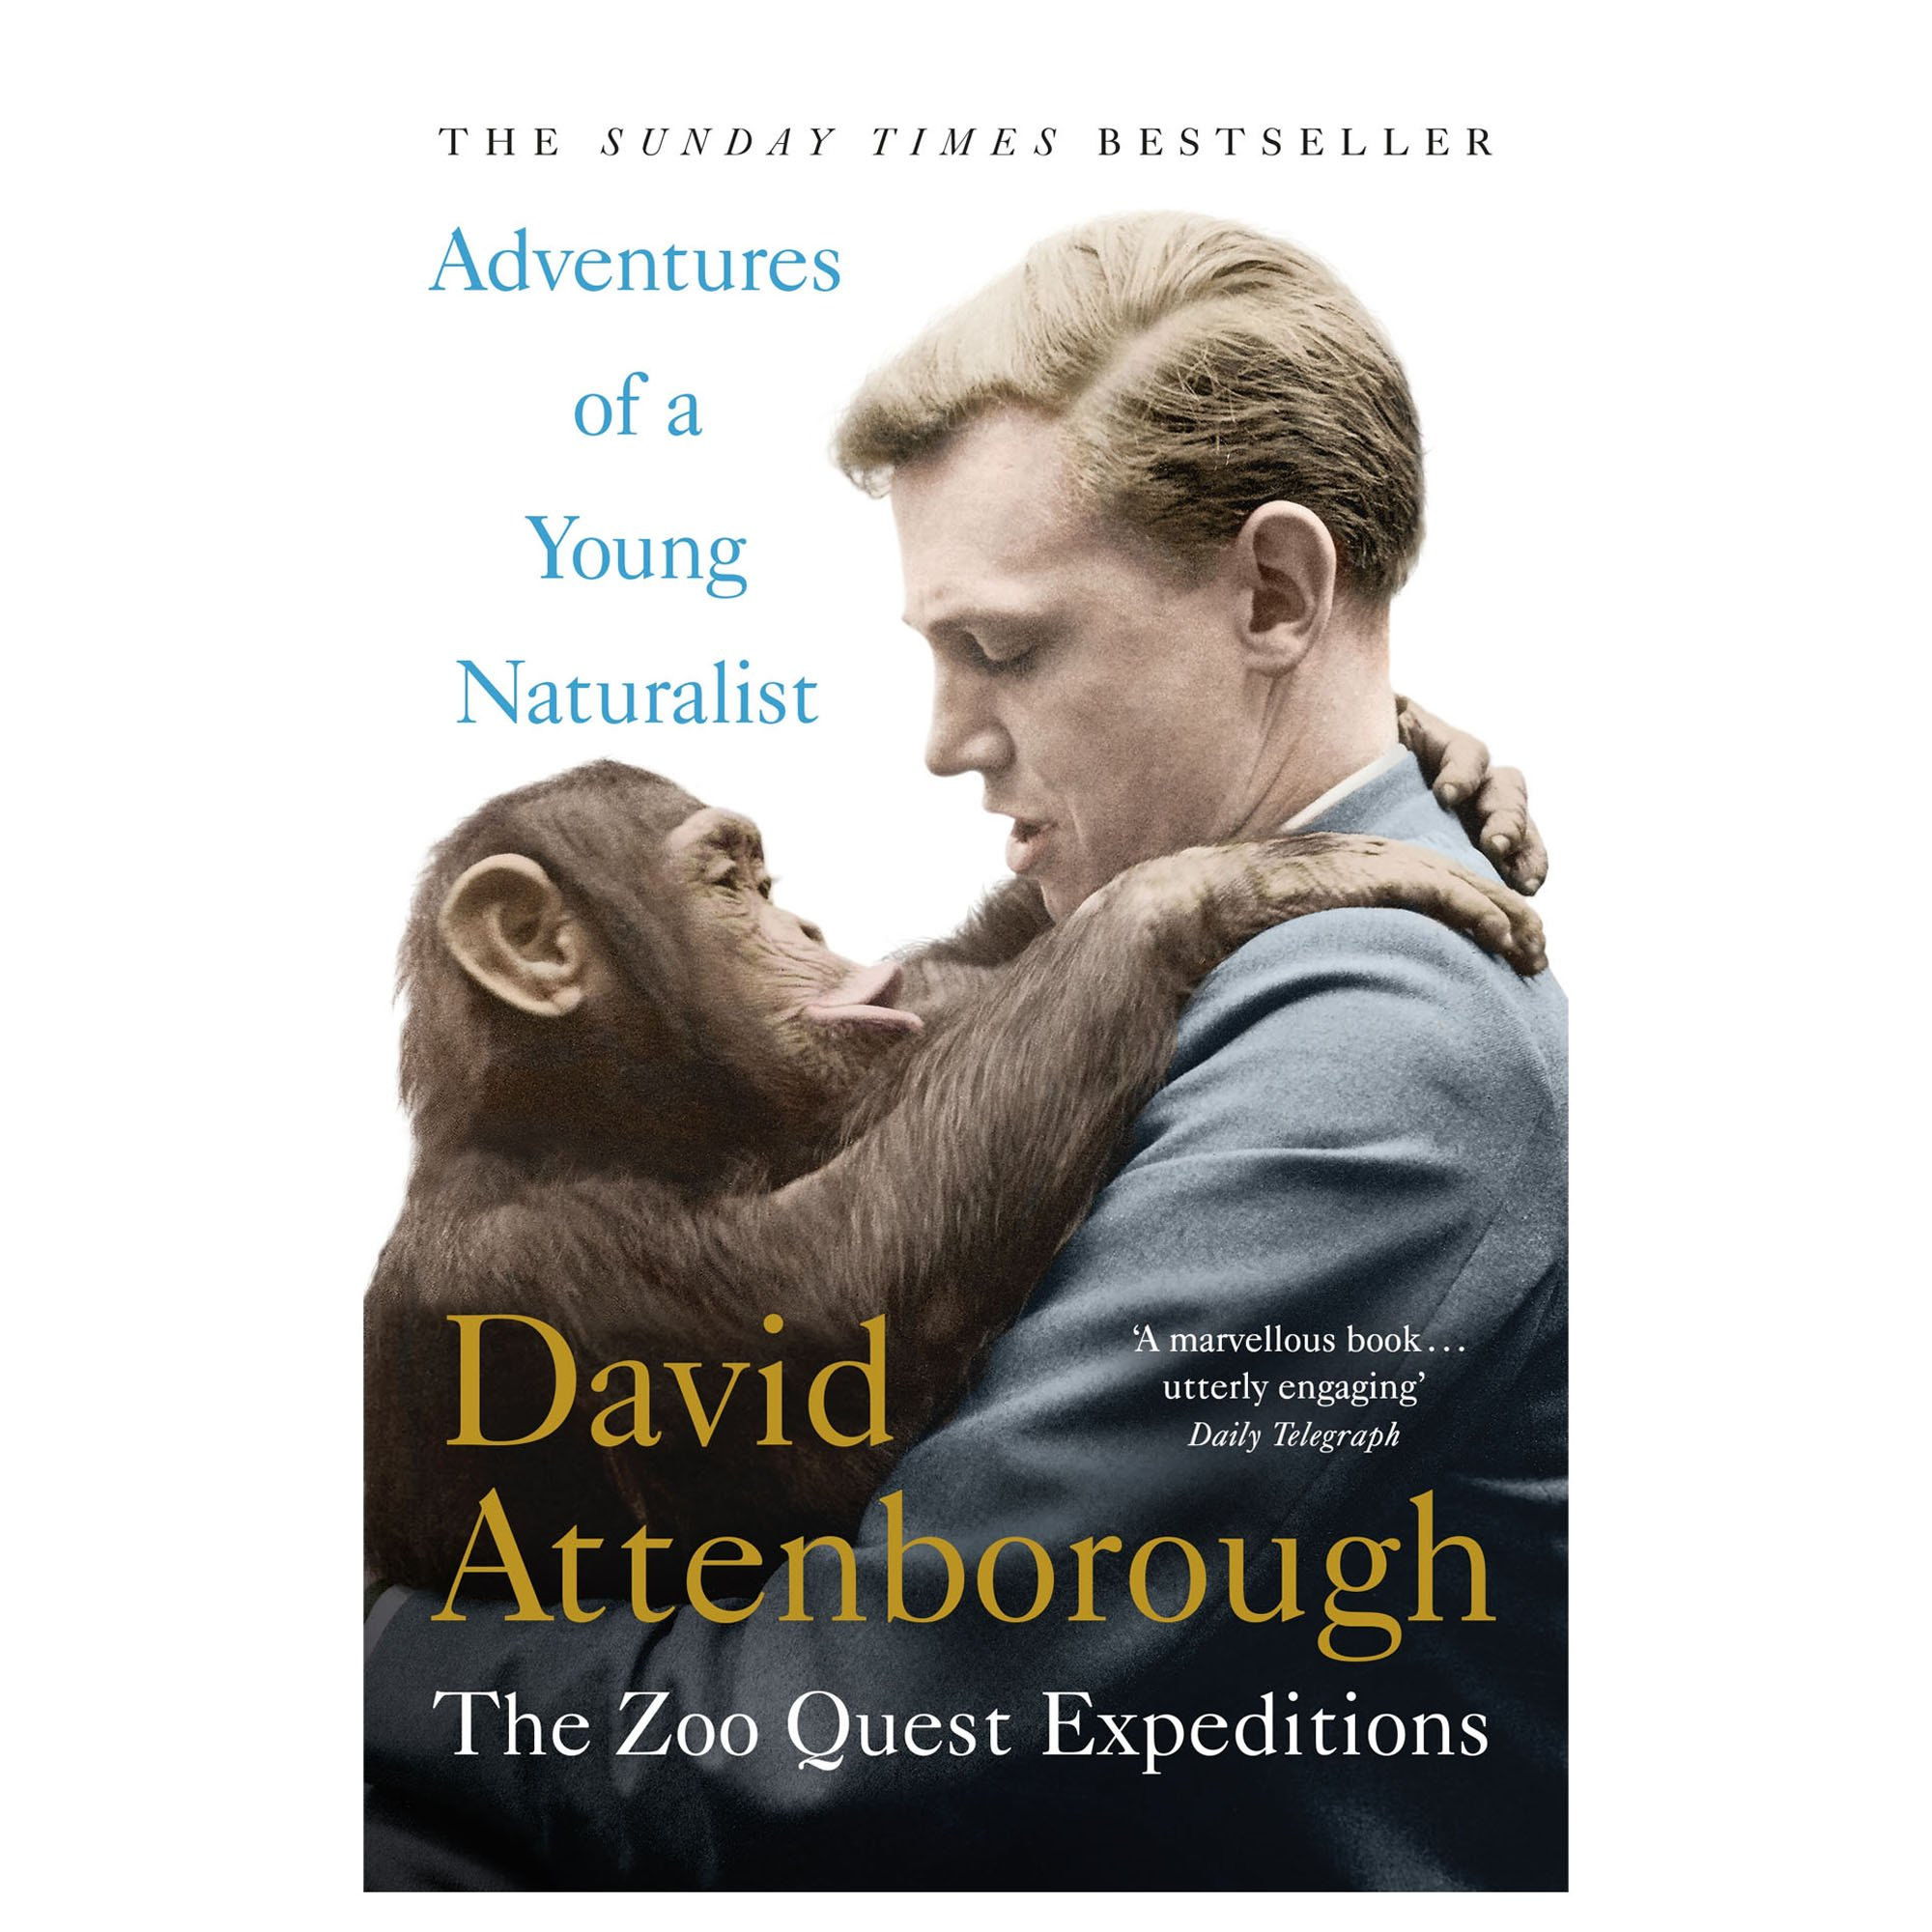 David Attenborough Adventures of a Young Naturalist